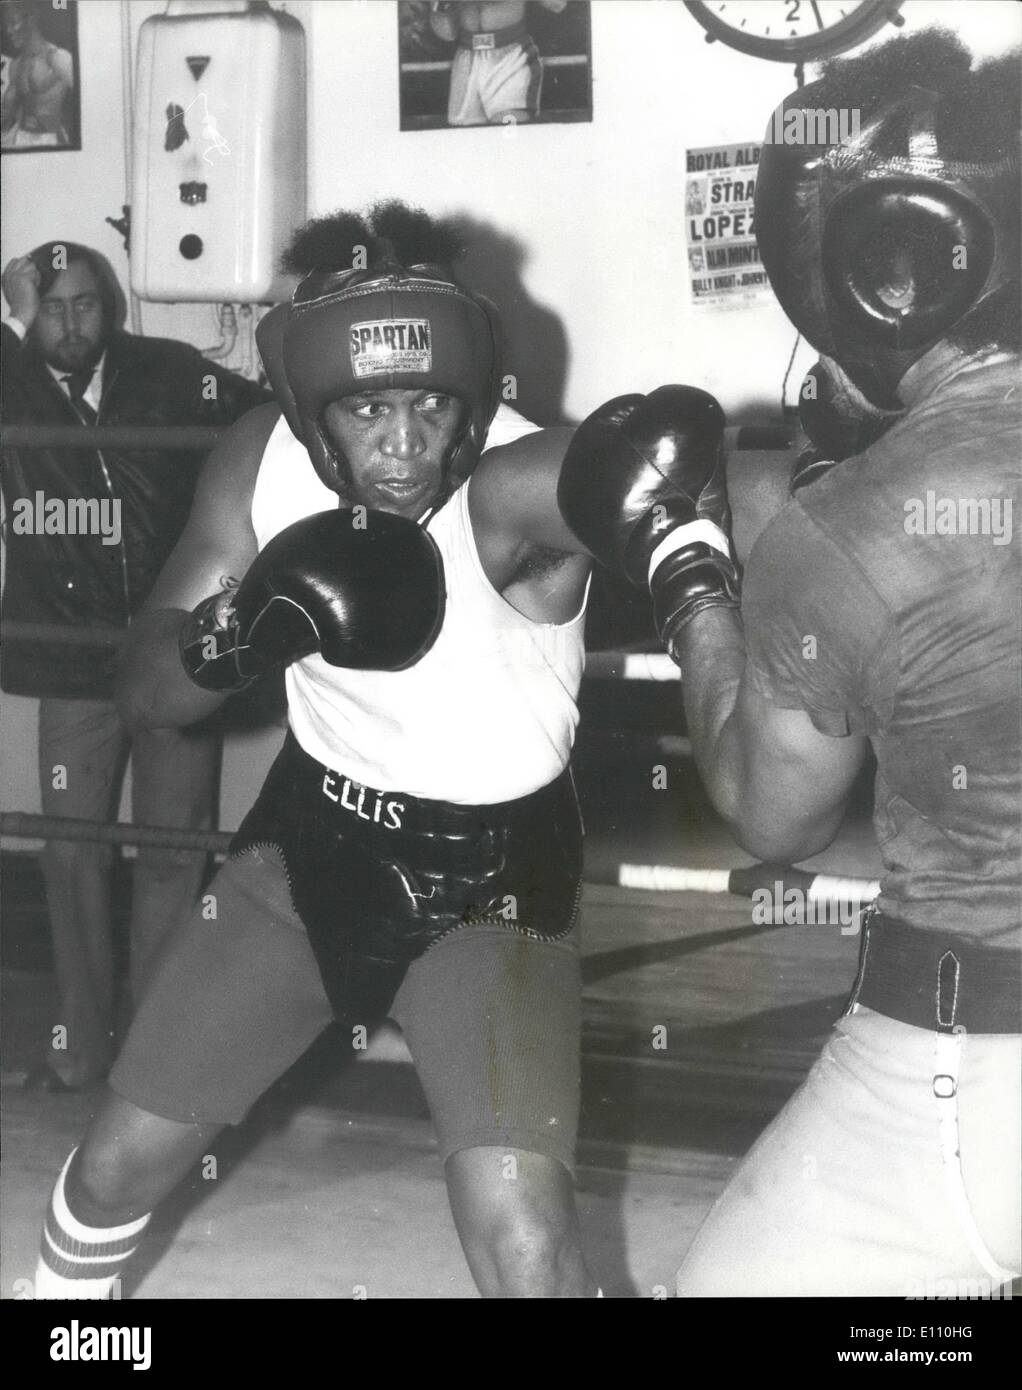 Nov. 11, 1974 - JIMMY ELLIS IN TRAINING AT T,OMAS'A BECKETT PHOTO SHOWS: JIMMY ELLIS during a work-out with Light-heavyweight BILLY KNIGHT he fight. JOE BUGNER the British European and Commonwealth Heavy-weight Champion next Tuesday at Weable3, - Stock Image